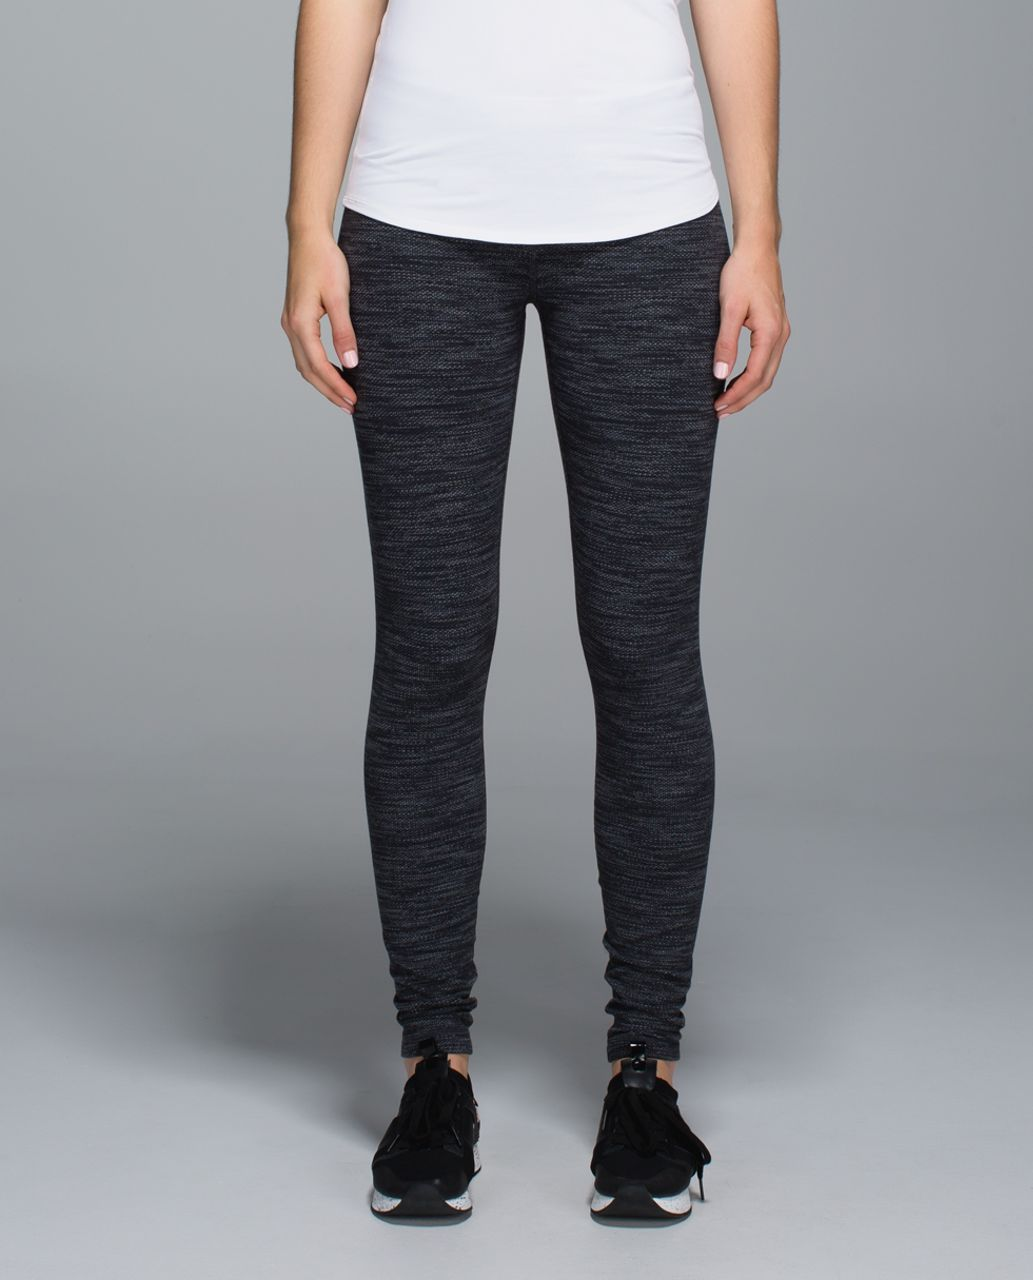 Lululemon Wunder Under Pant - Diamond Jacquard Space Dye Black Deep Coal